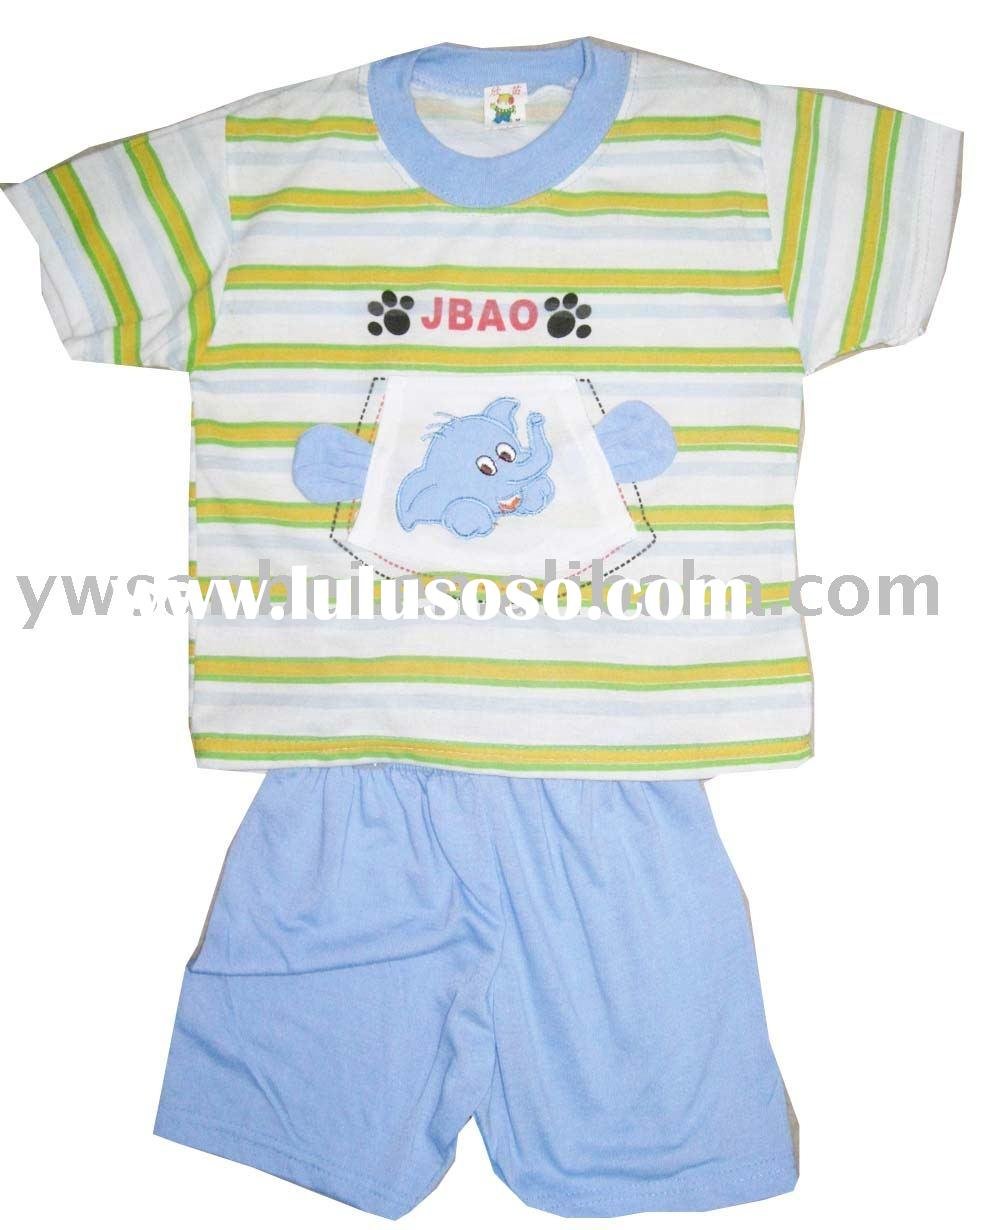 children's garment stock